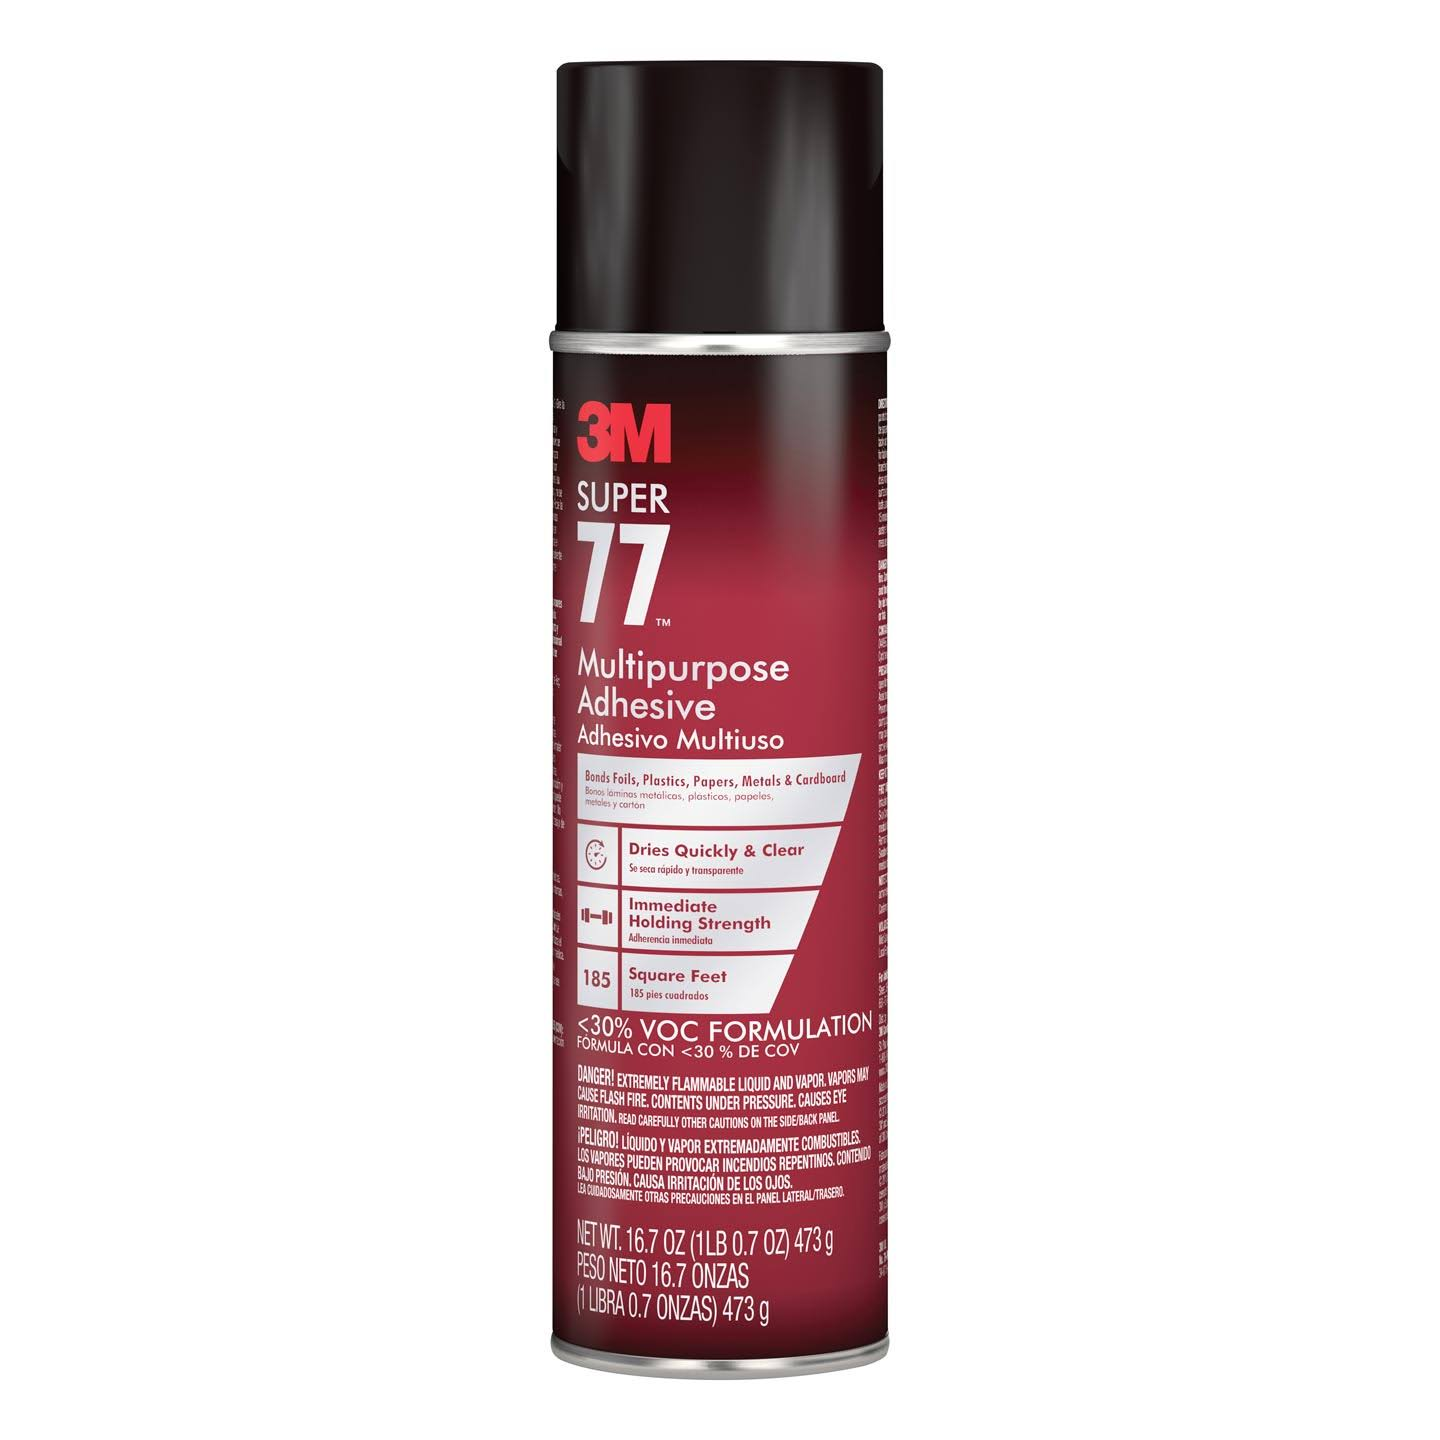 3M Spray Adhesive 77